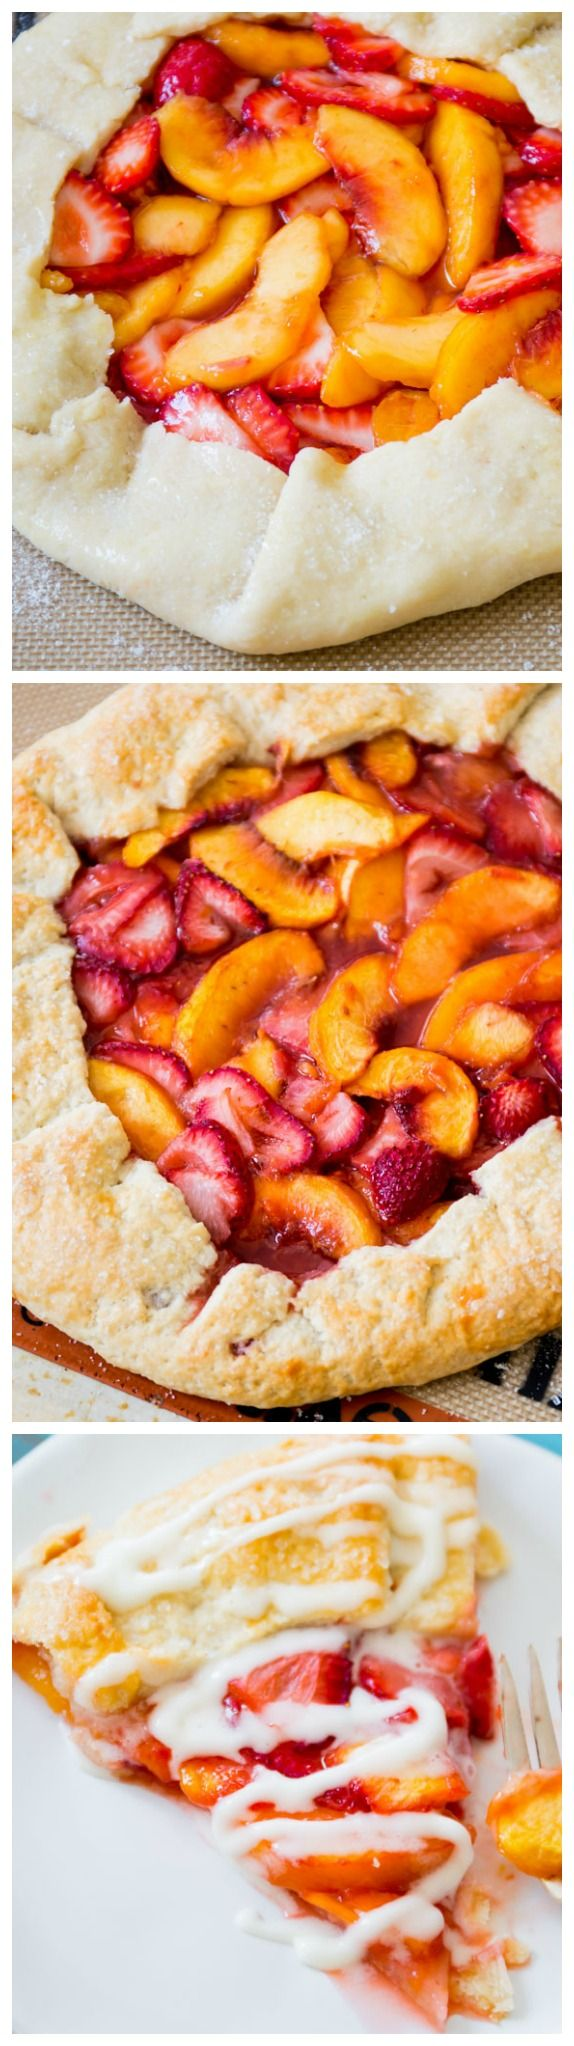 Rustic strawberry peach tart #recipe